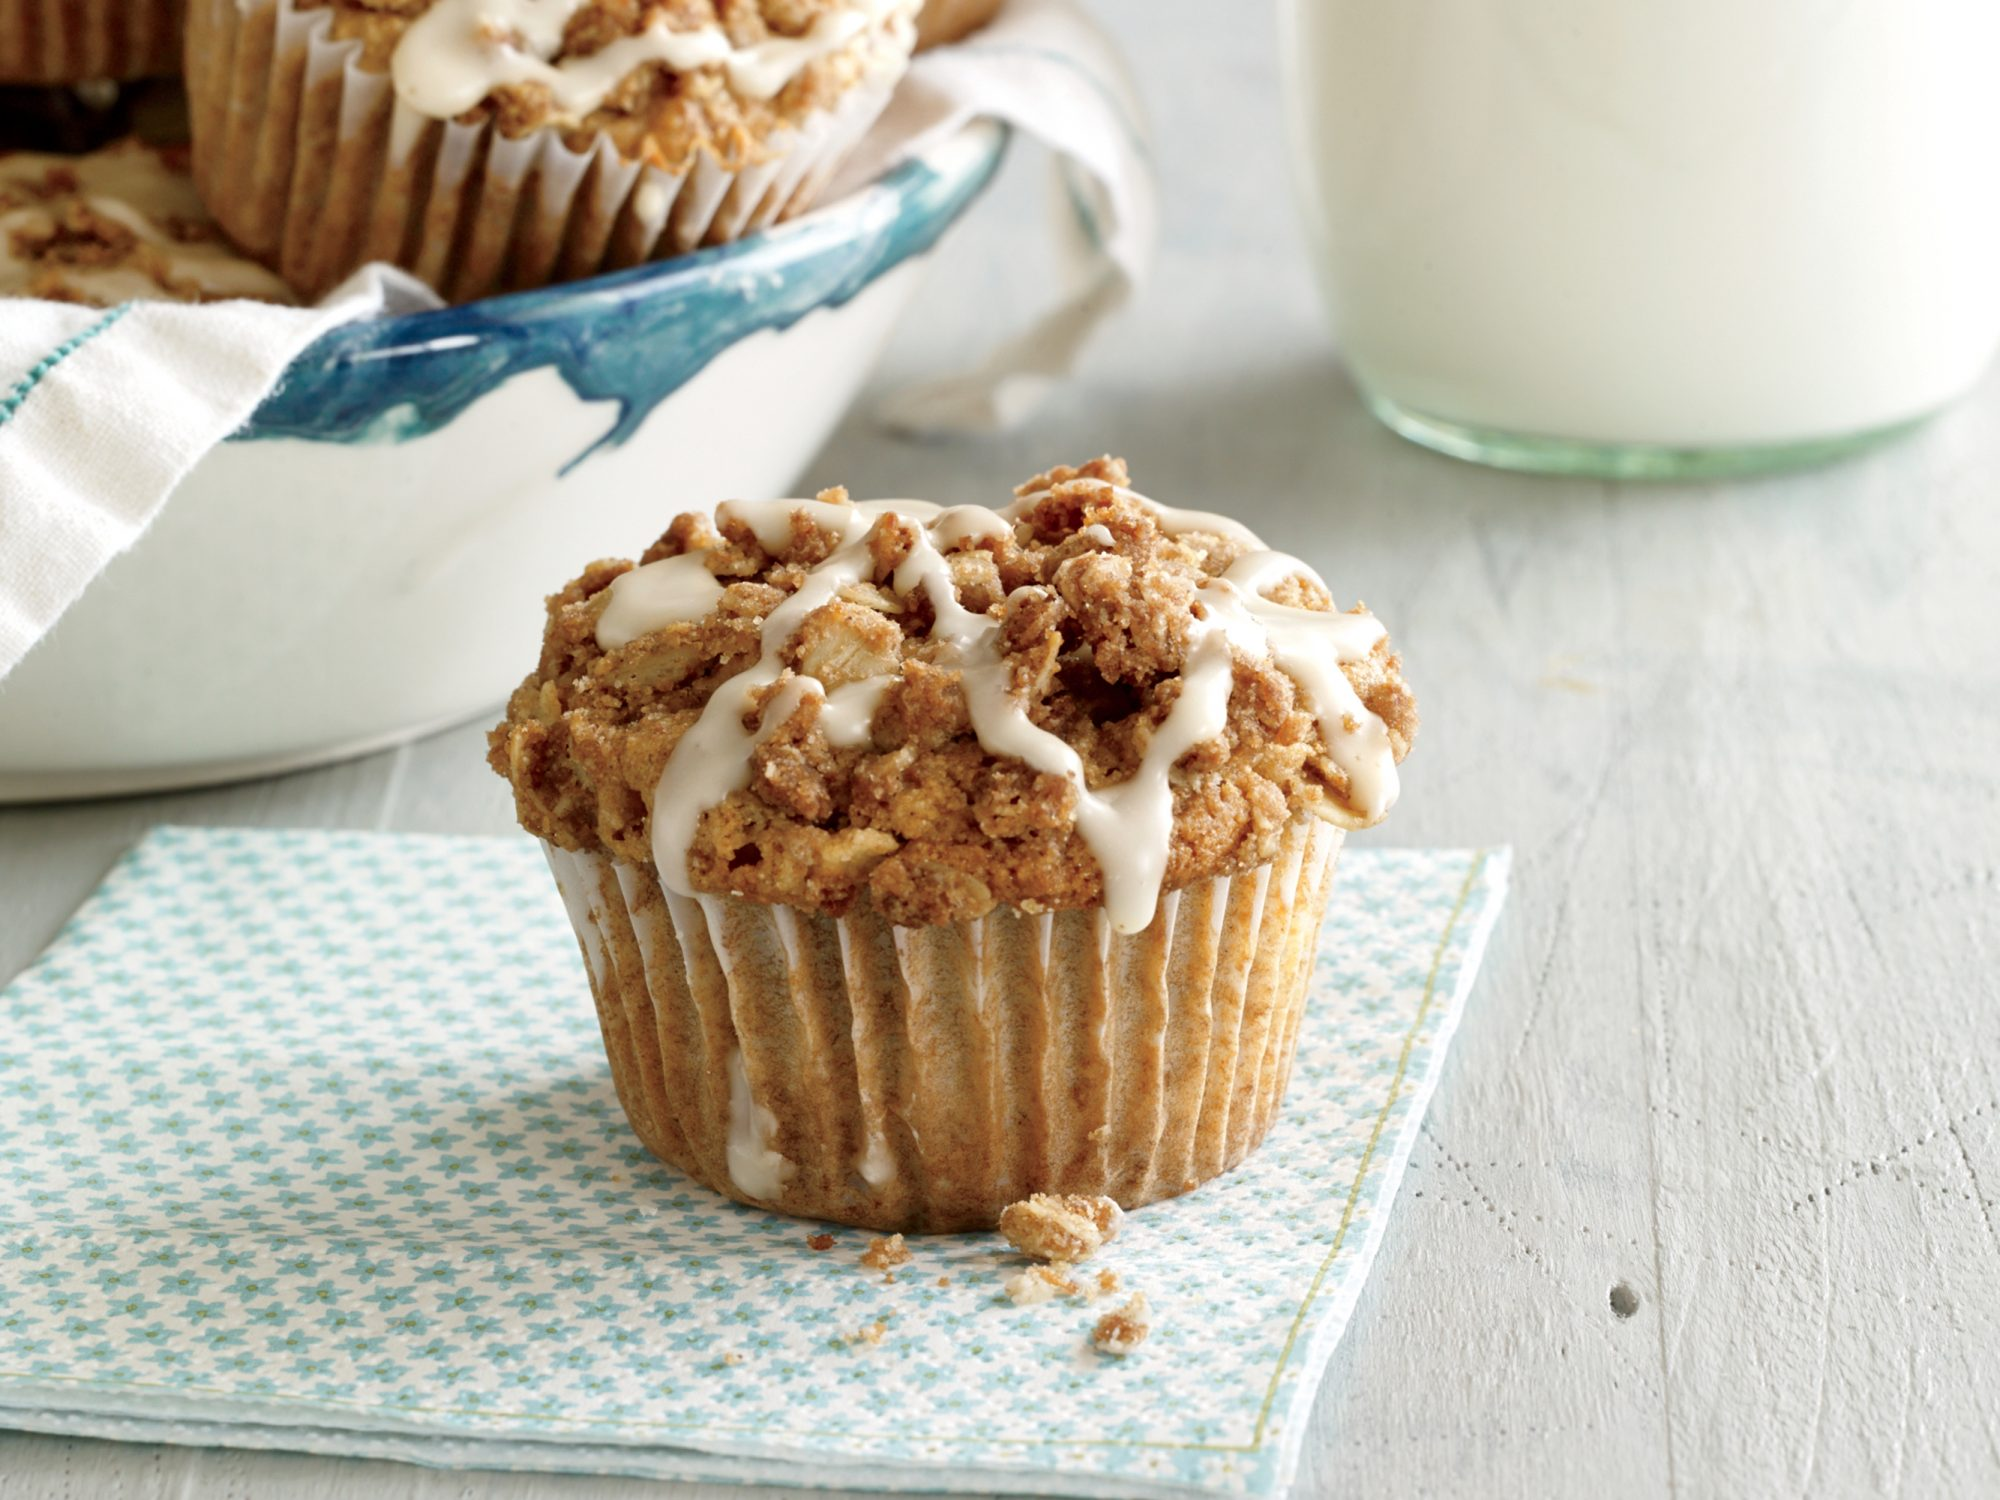 1409p149-apple-streusel-muffins-maple-drizzle-crop.jpg